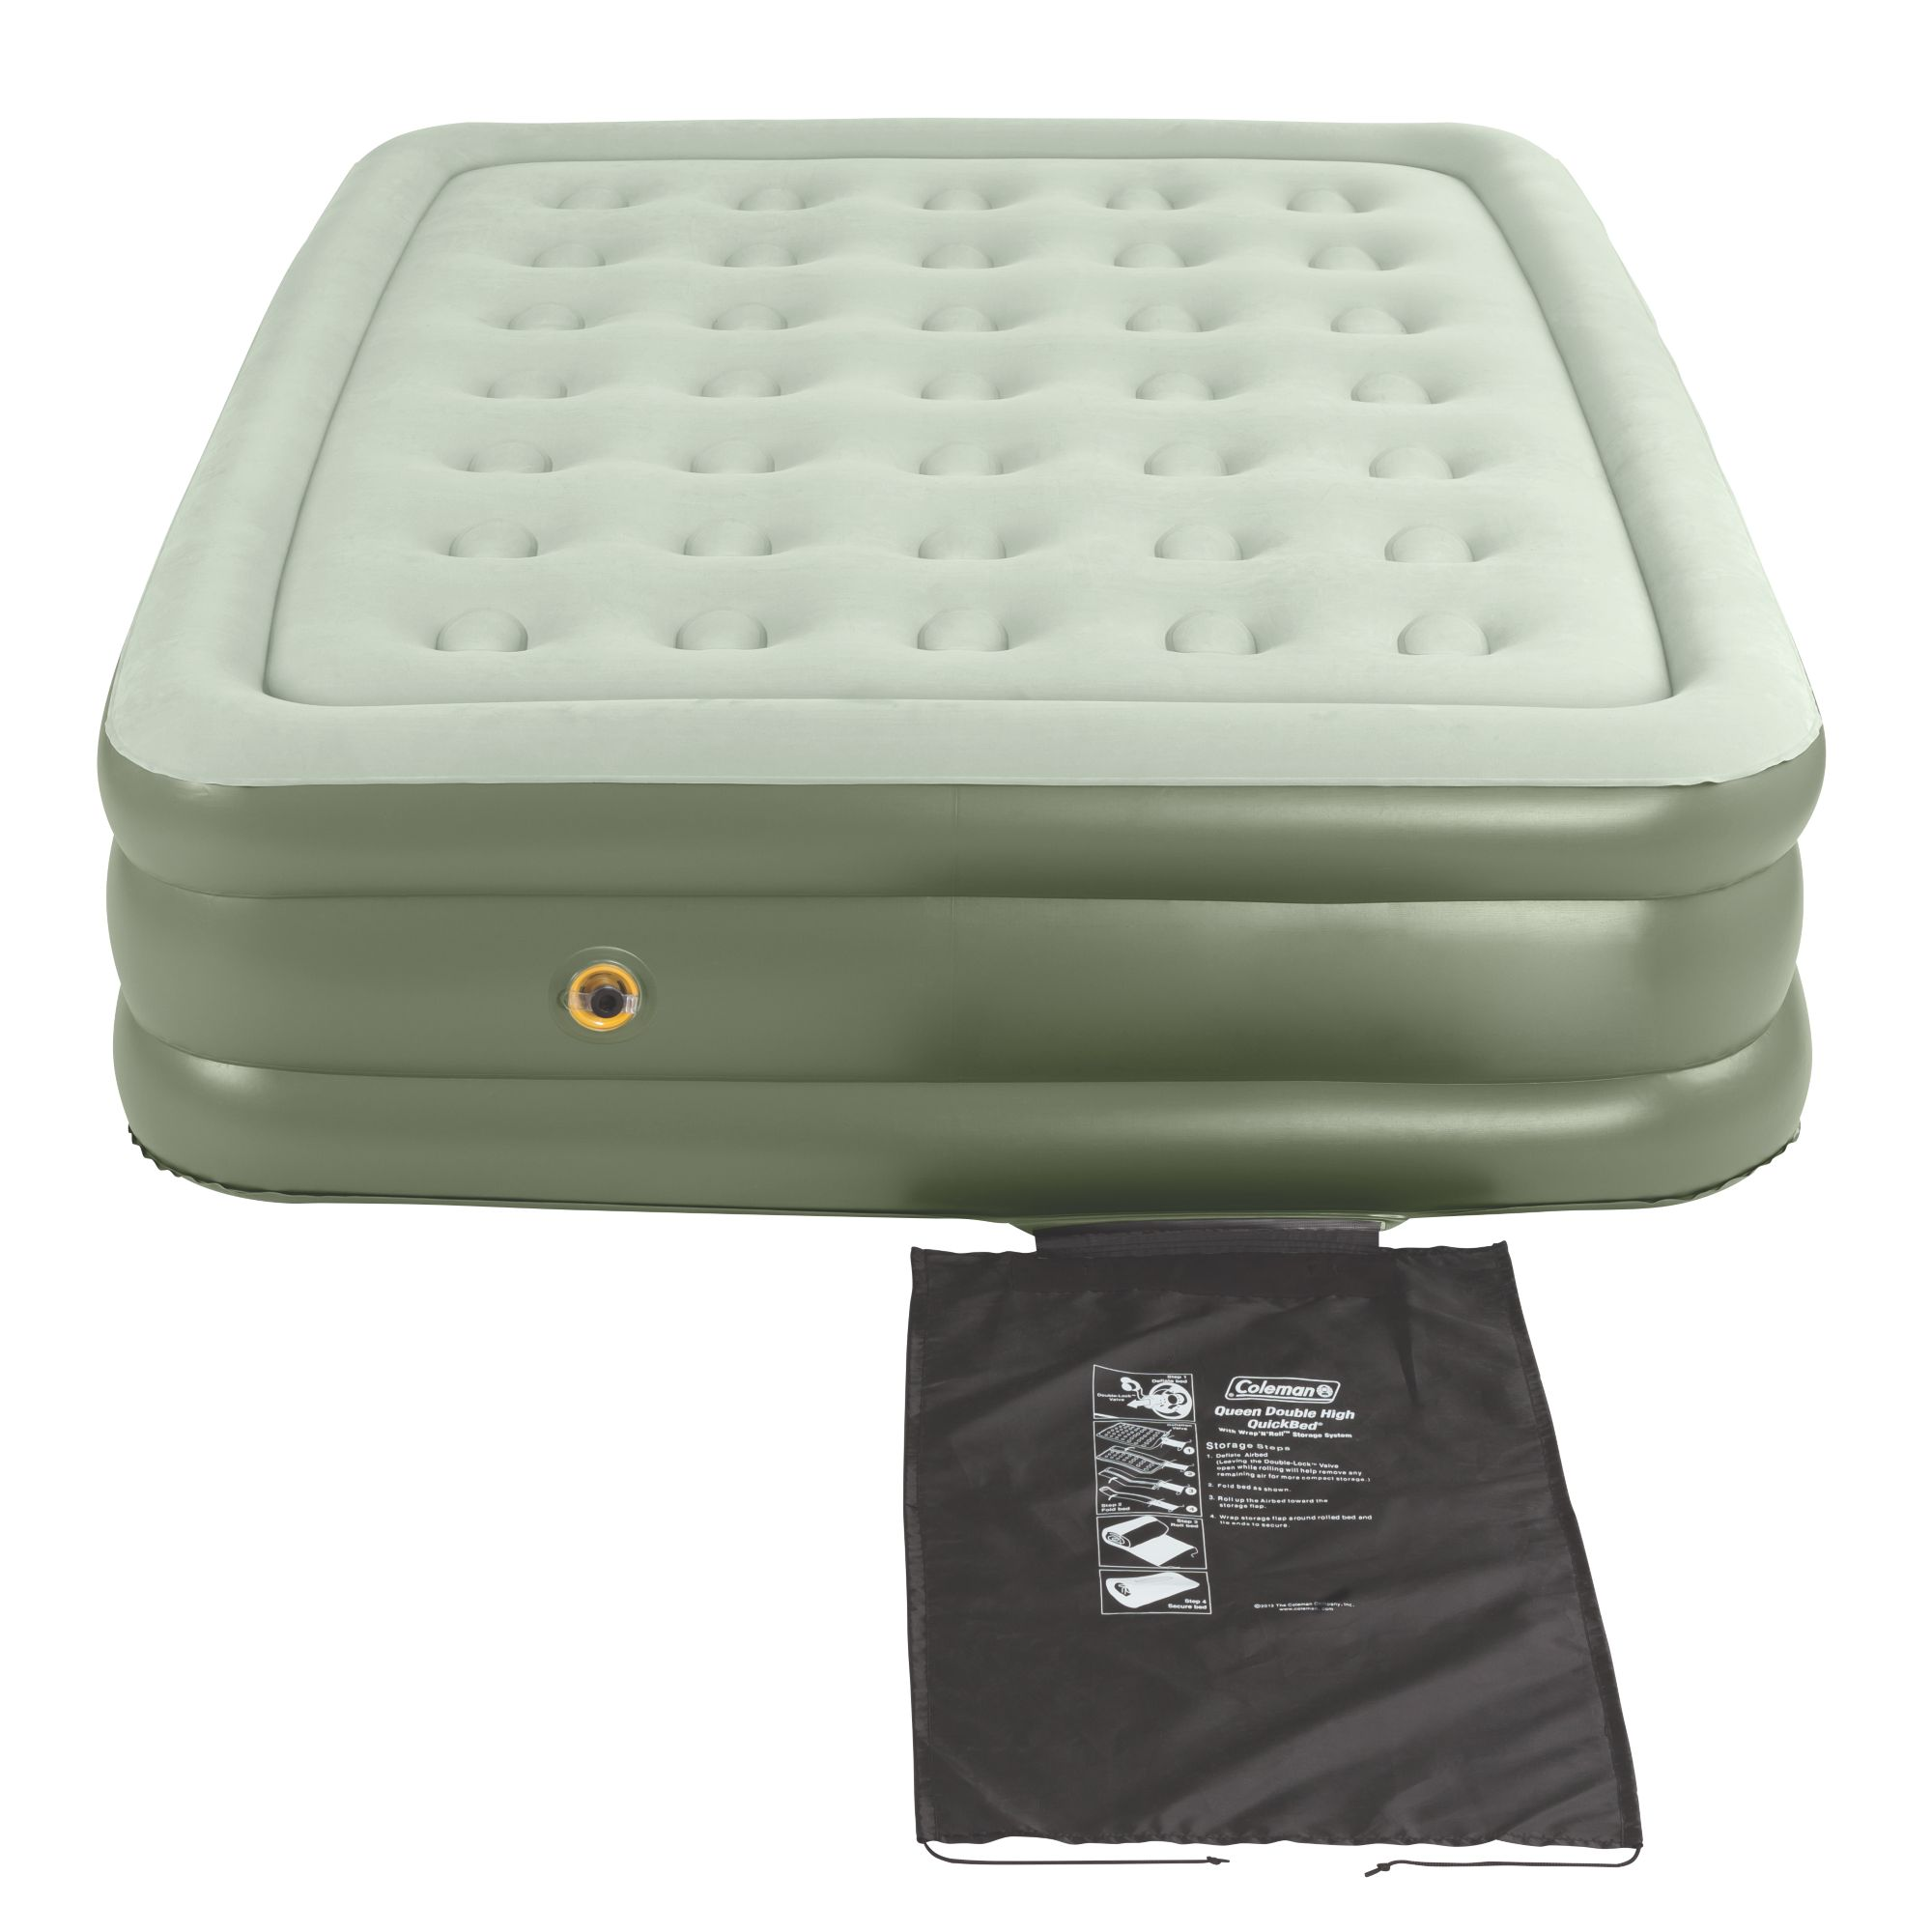 Queen Air Mattress Cot Coleman Supportrest Elite Quilted Top Airbed Full Air Mattress